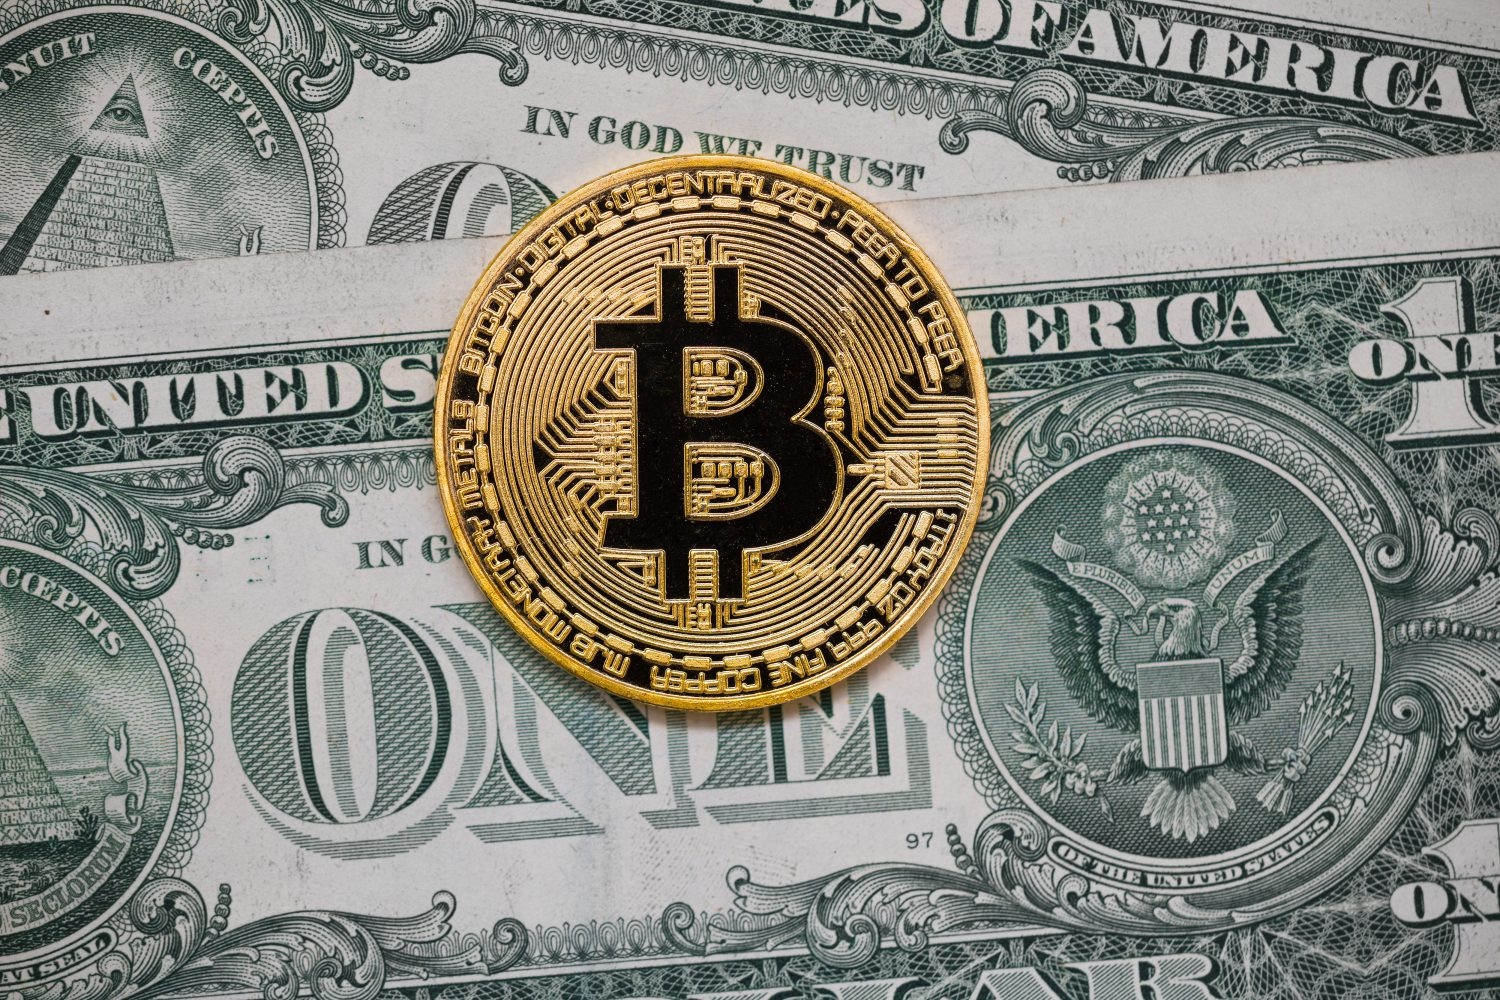 Bitcoin overview for beginners